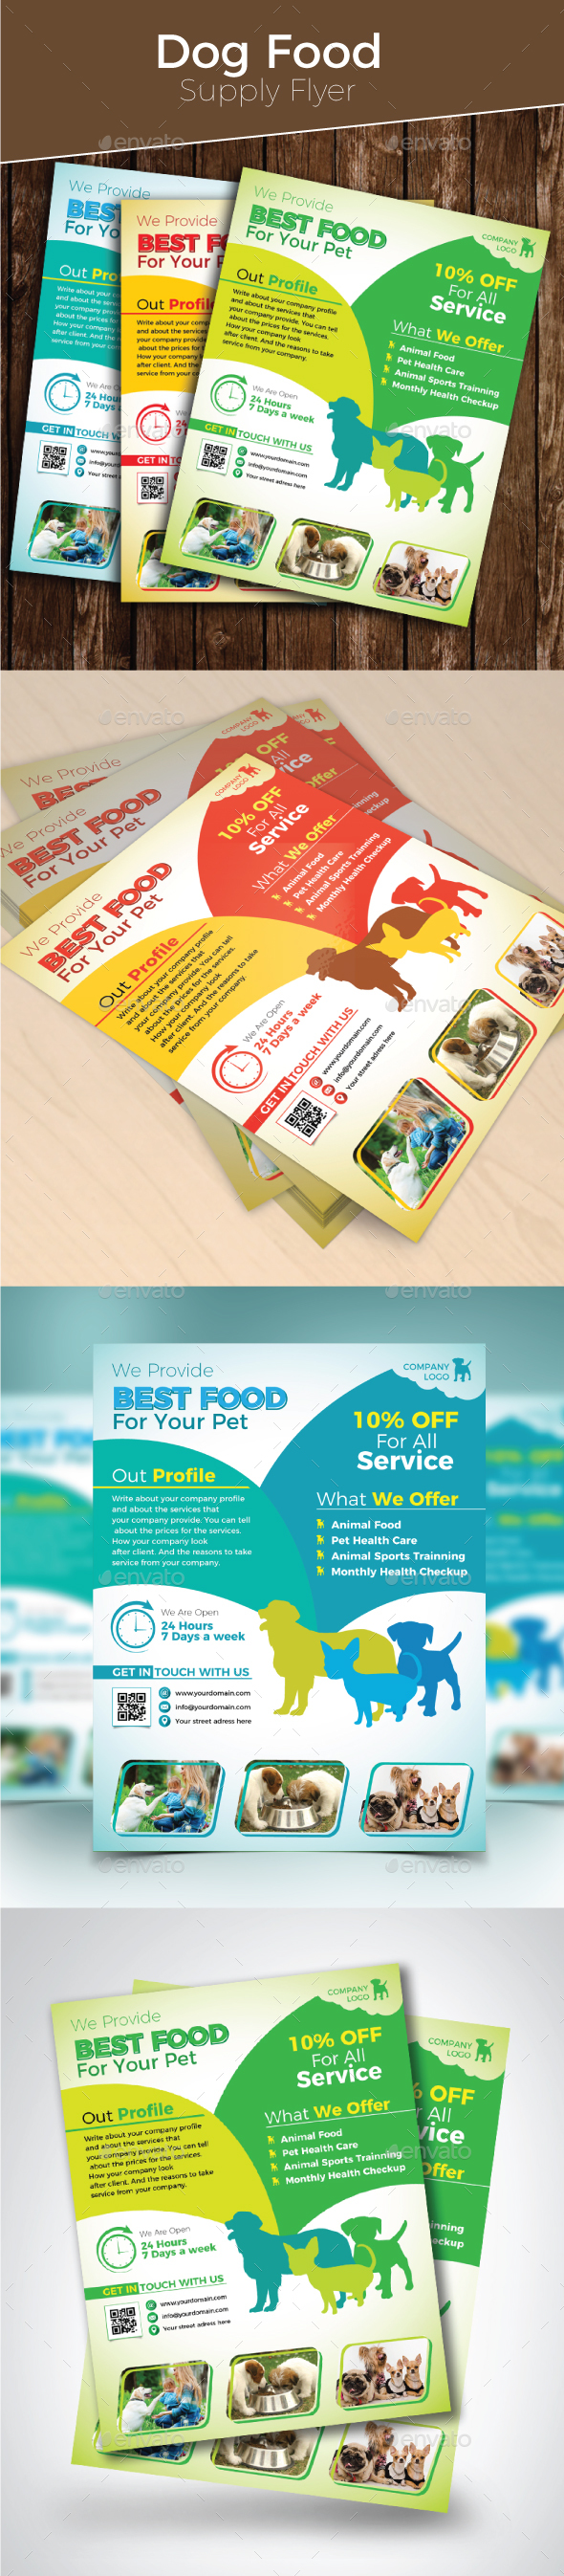 Dog Food Supply Flyer - Events Flyers